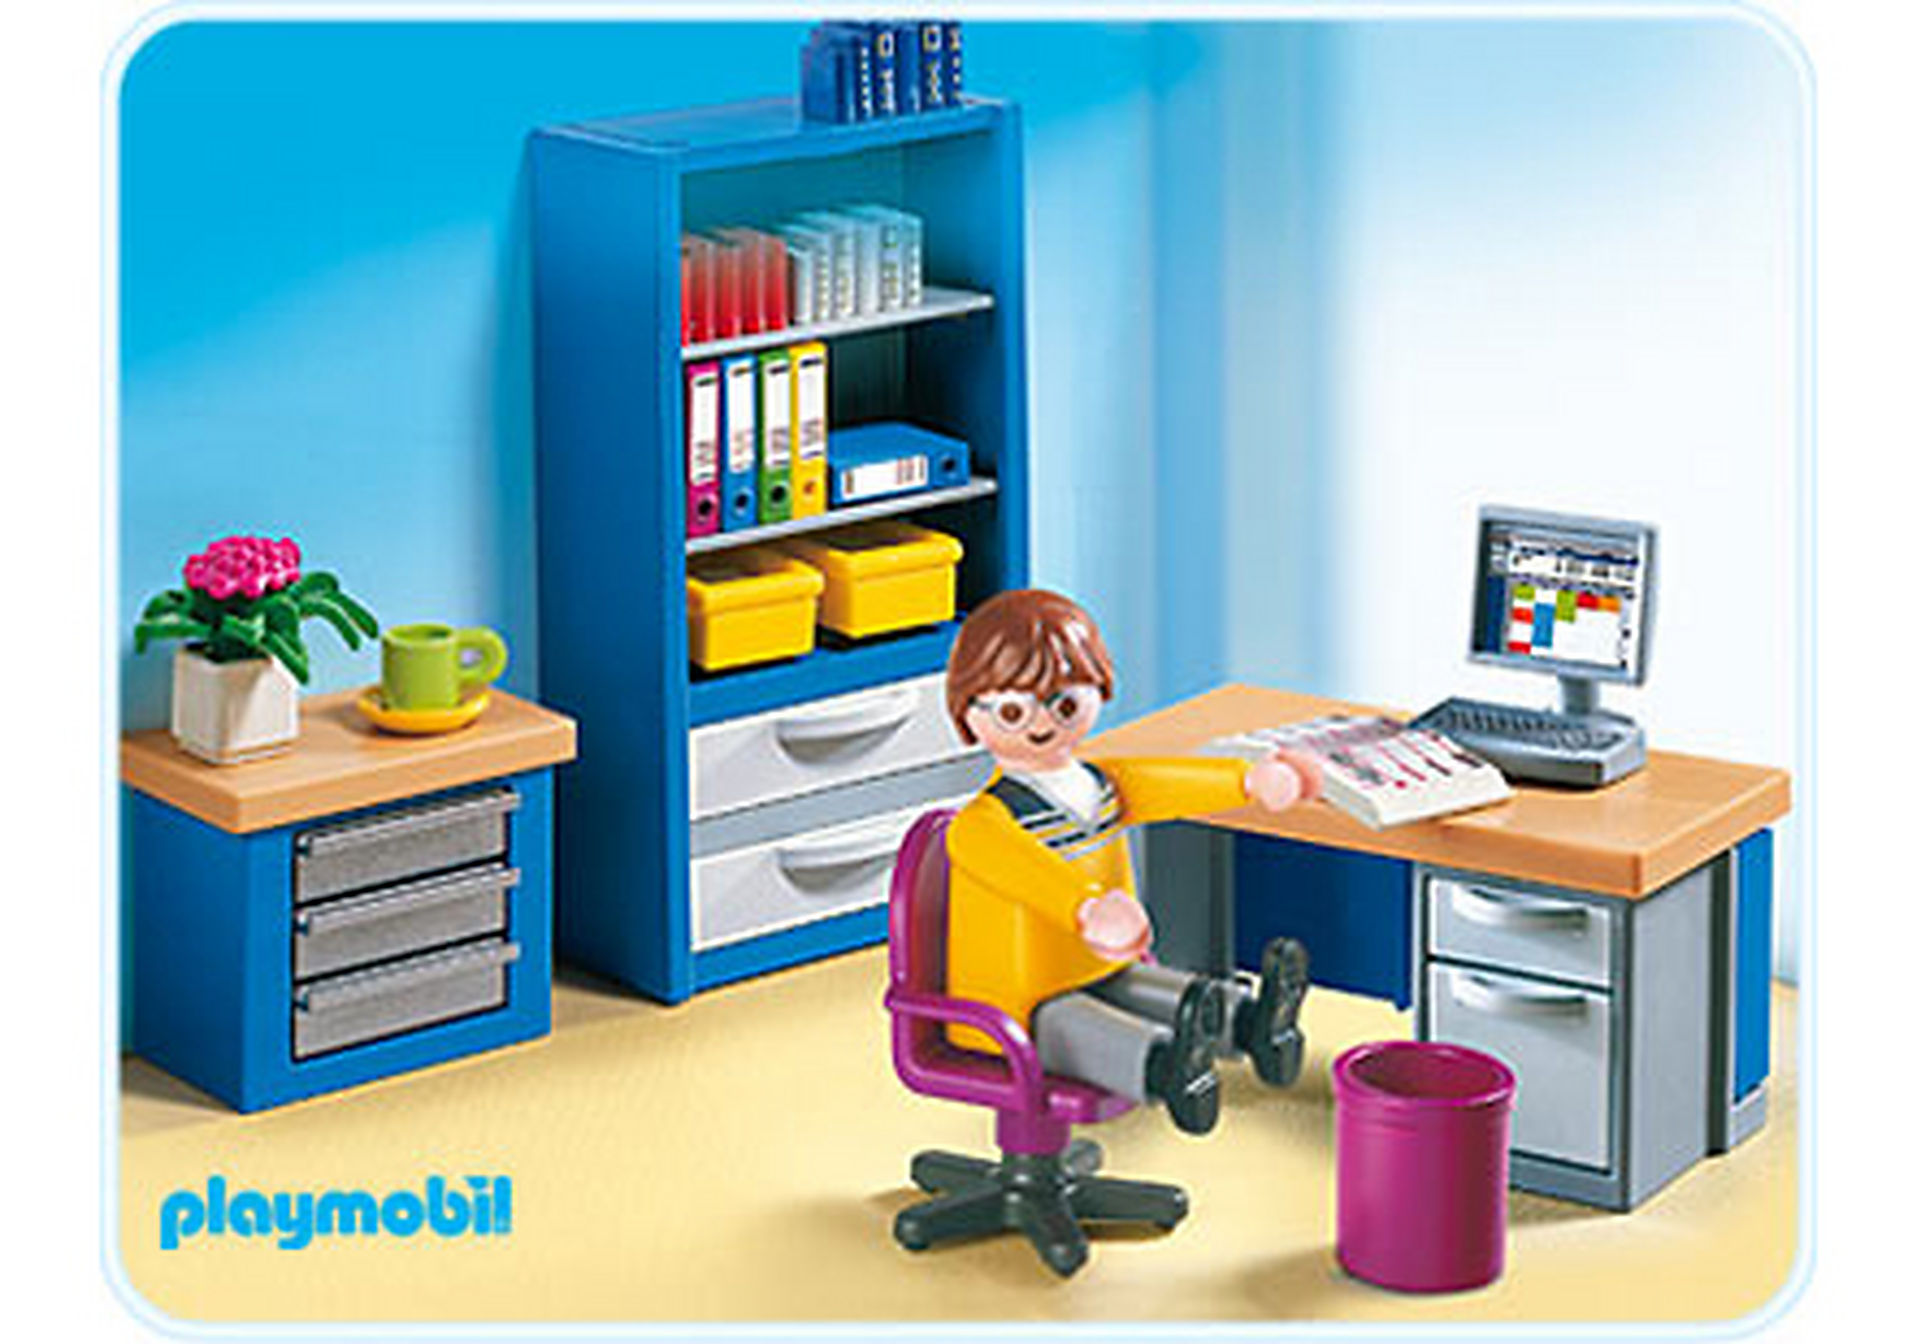 http://media.playmobil.com/i/playmobil/4289-A_product_detail/Arbeitszimmer